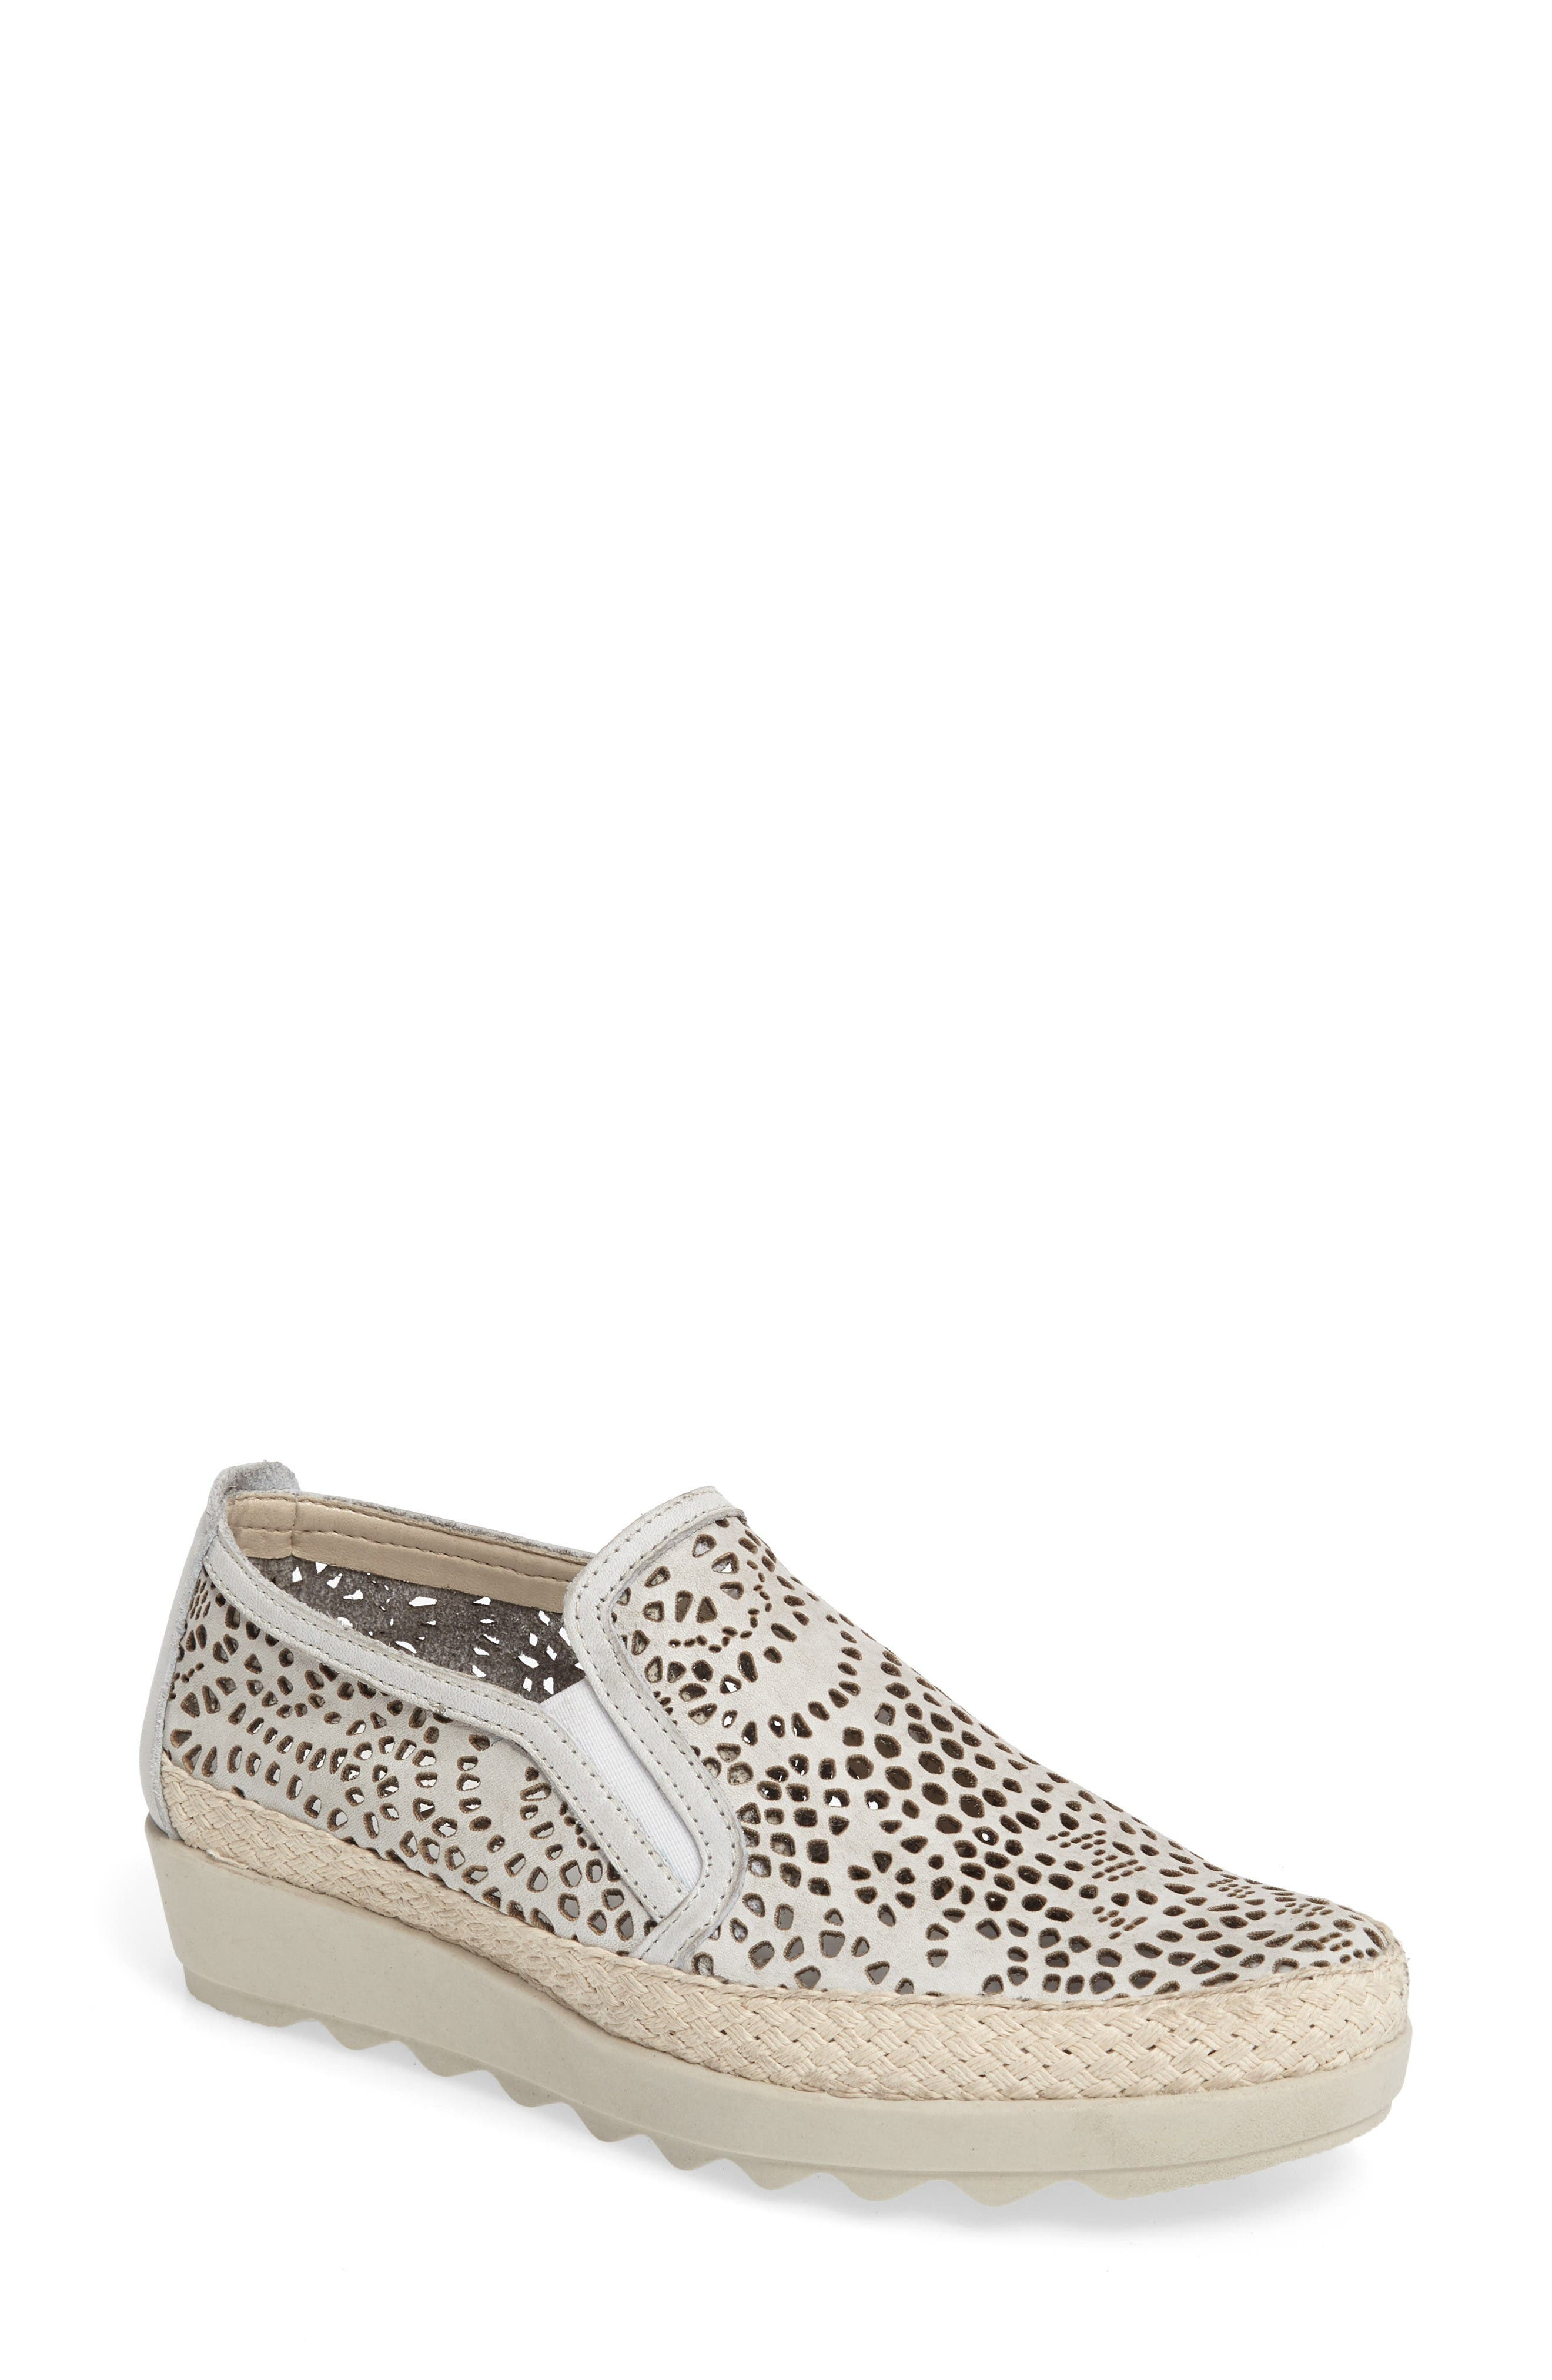 Main Image - The FLEXX Call Me Perforated Slip-On Sneaker (Women)